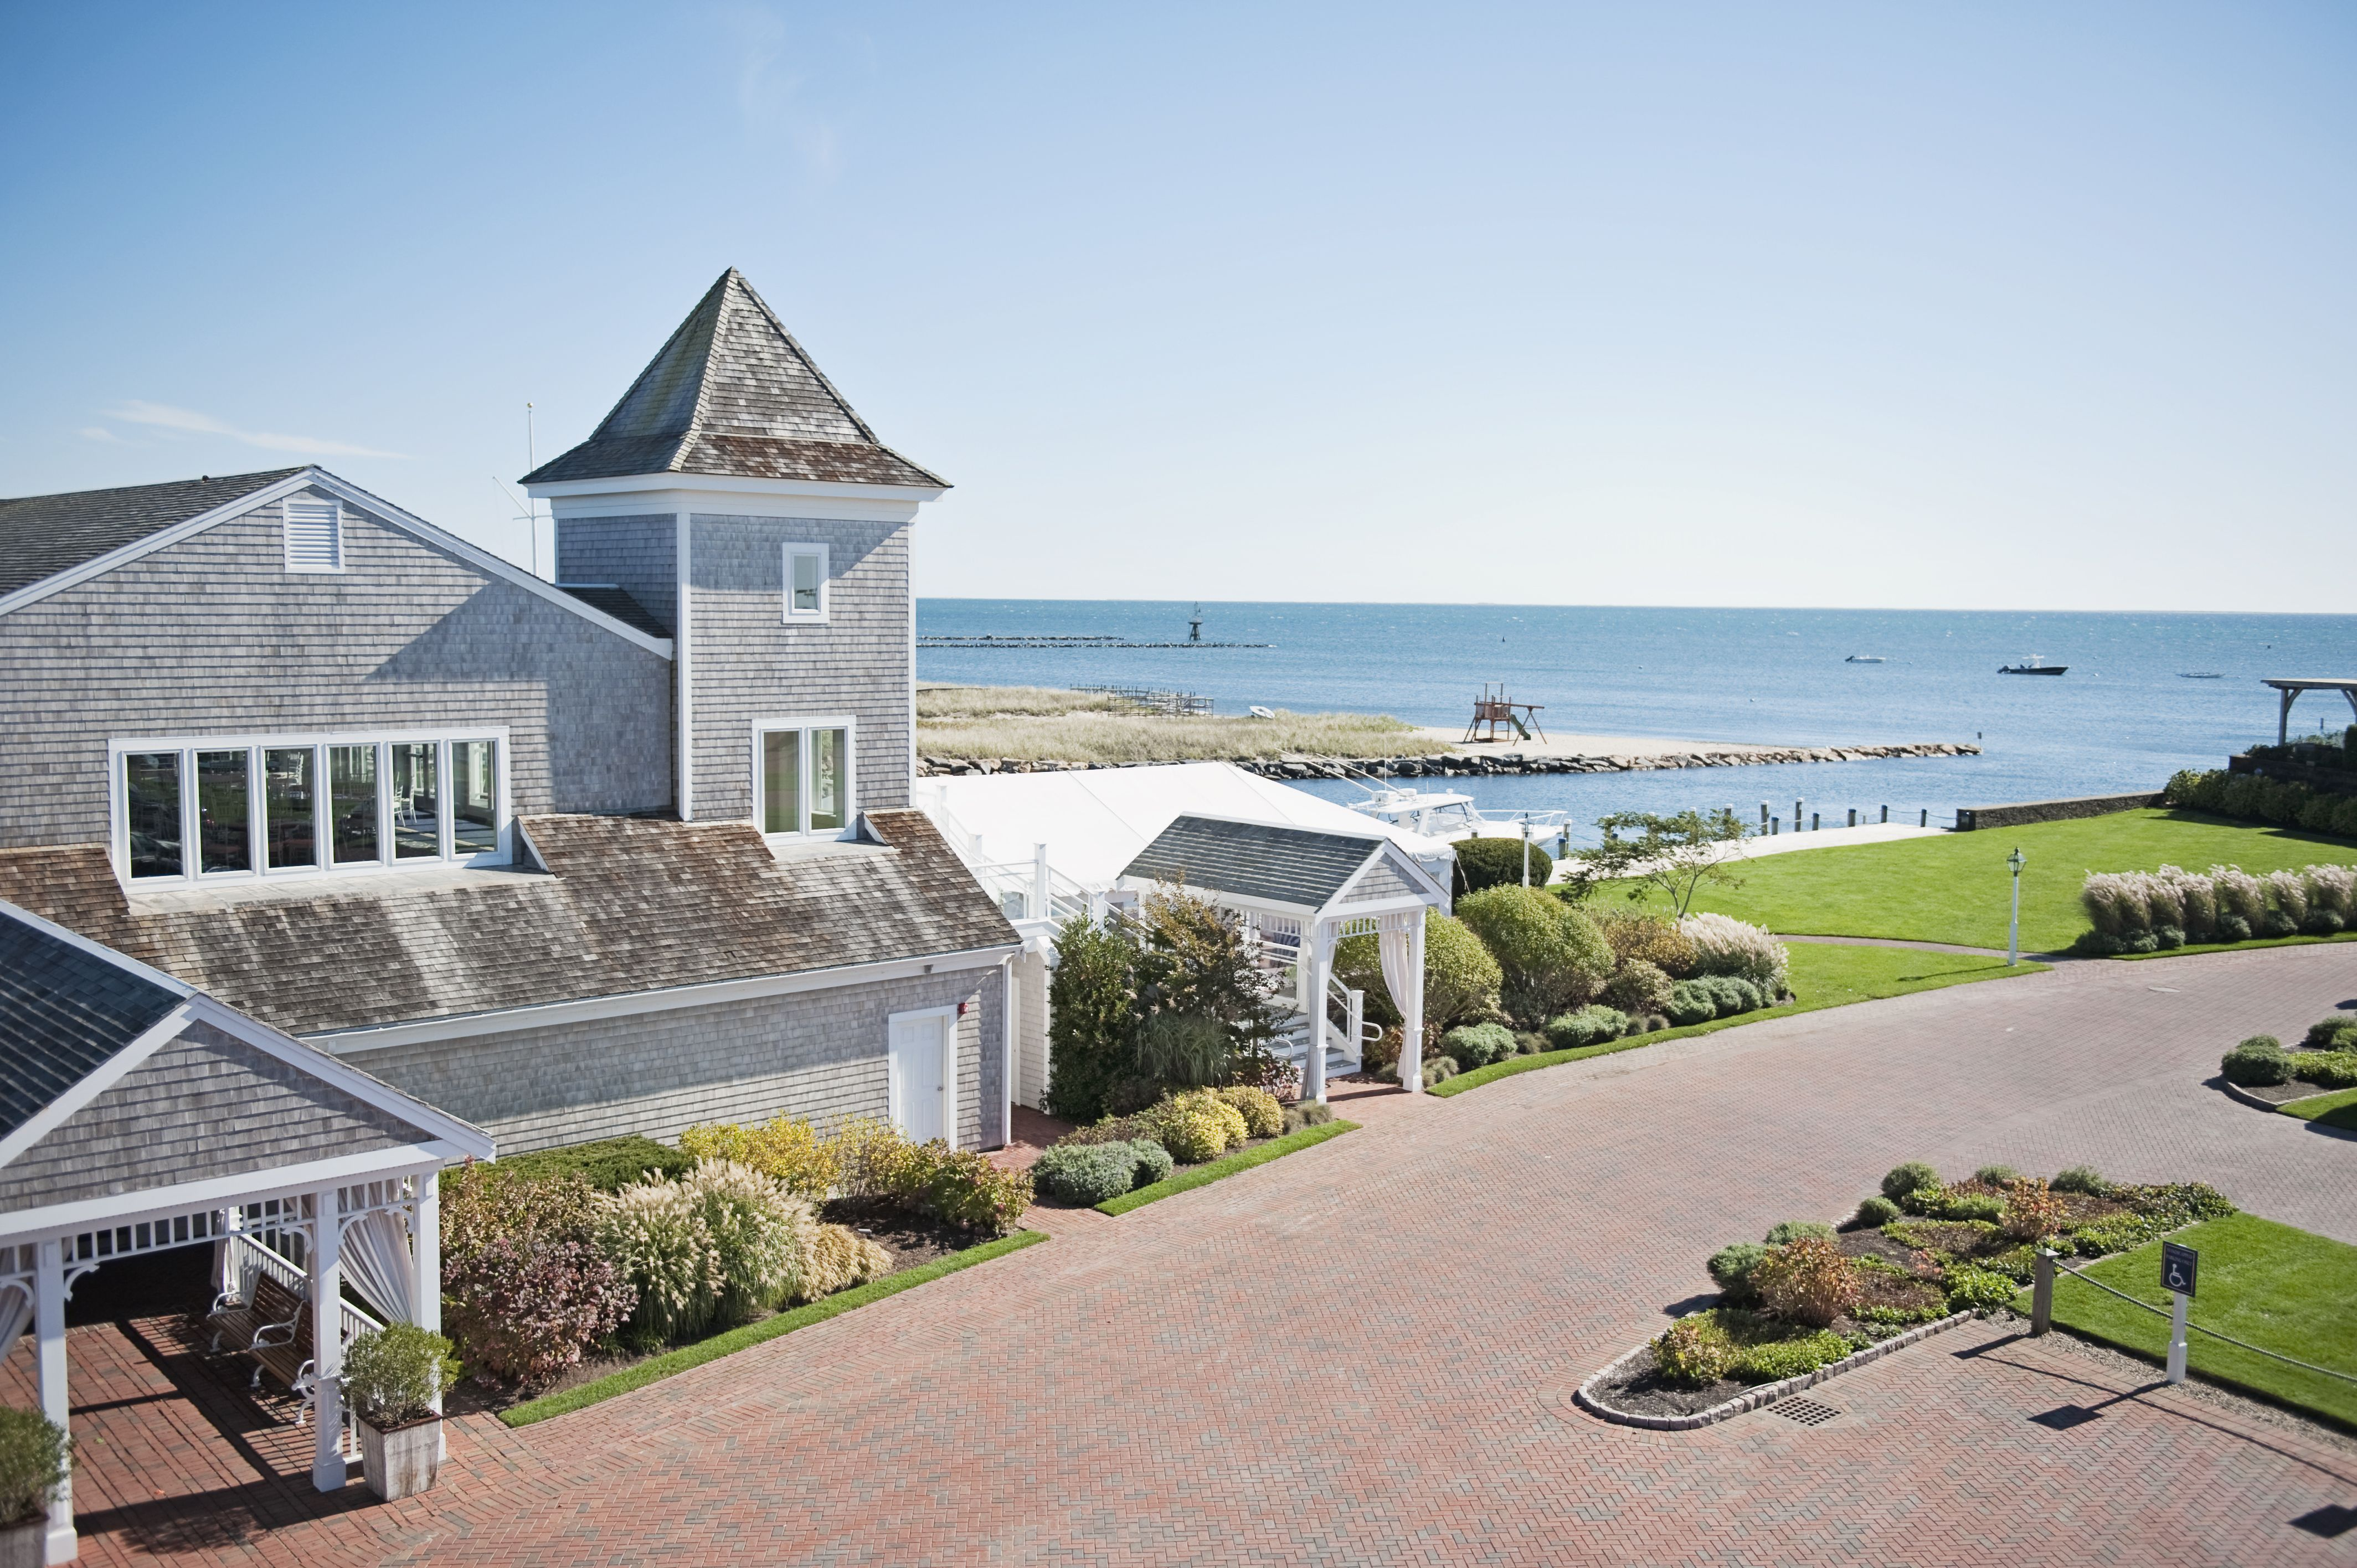 Wychmere beach club in harwich port massachusetts cape cod wychmere is one of those classic cape cod beach clubs thats a primo location for a monster crab boil or bbq on the sand junglespirit Gallery